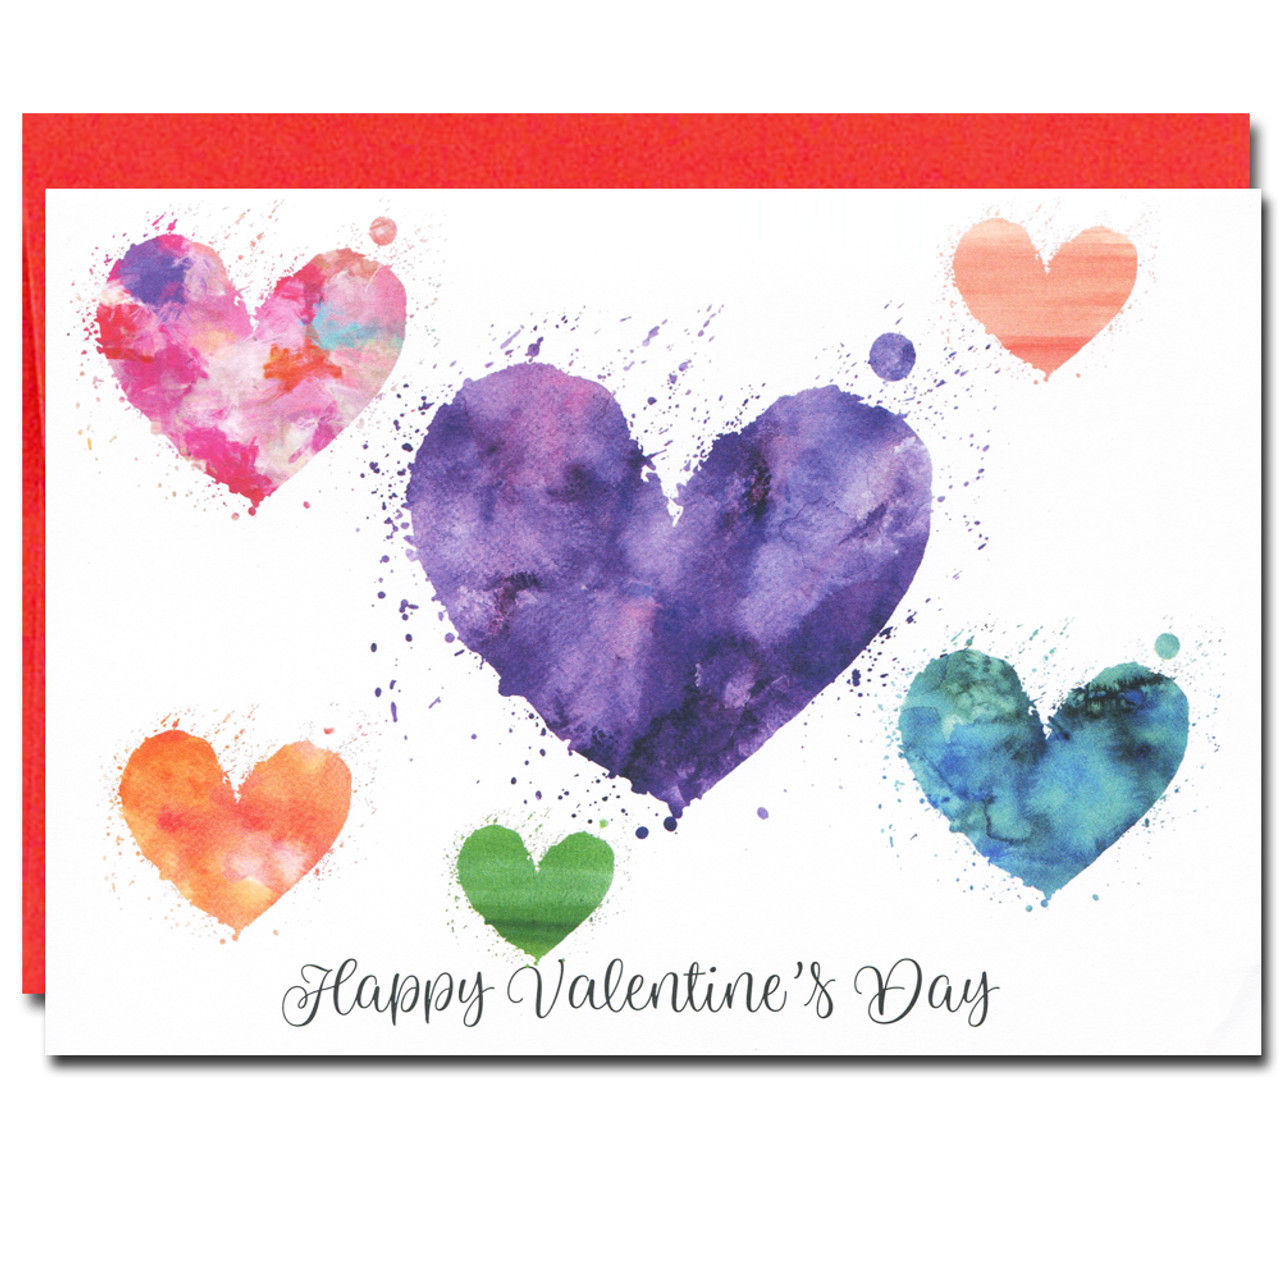 Valentine Card has multi-colored watercolor hearts and the greeting: Happy Valentine's Day